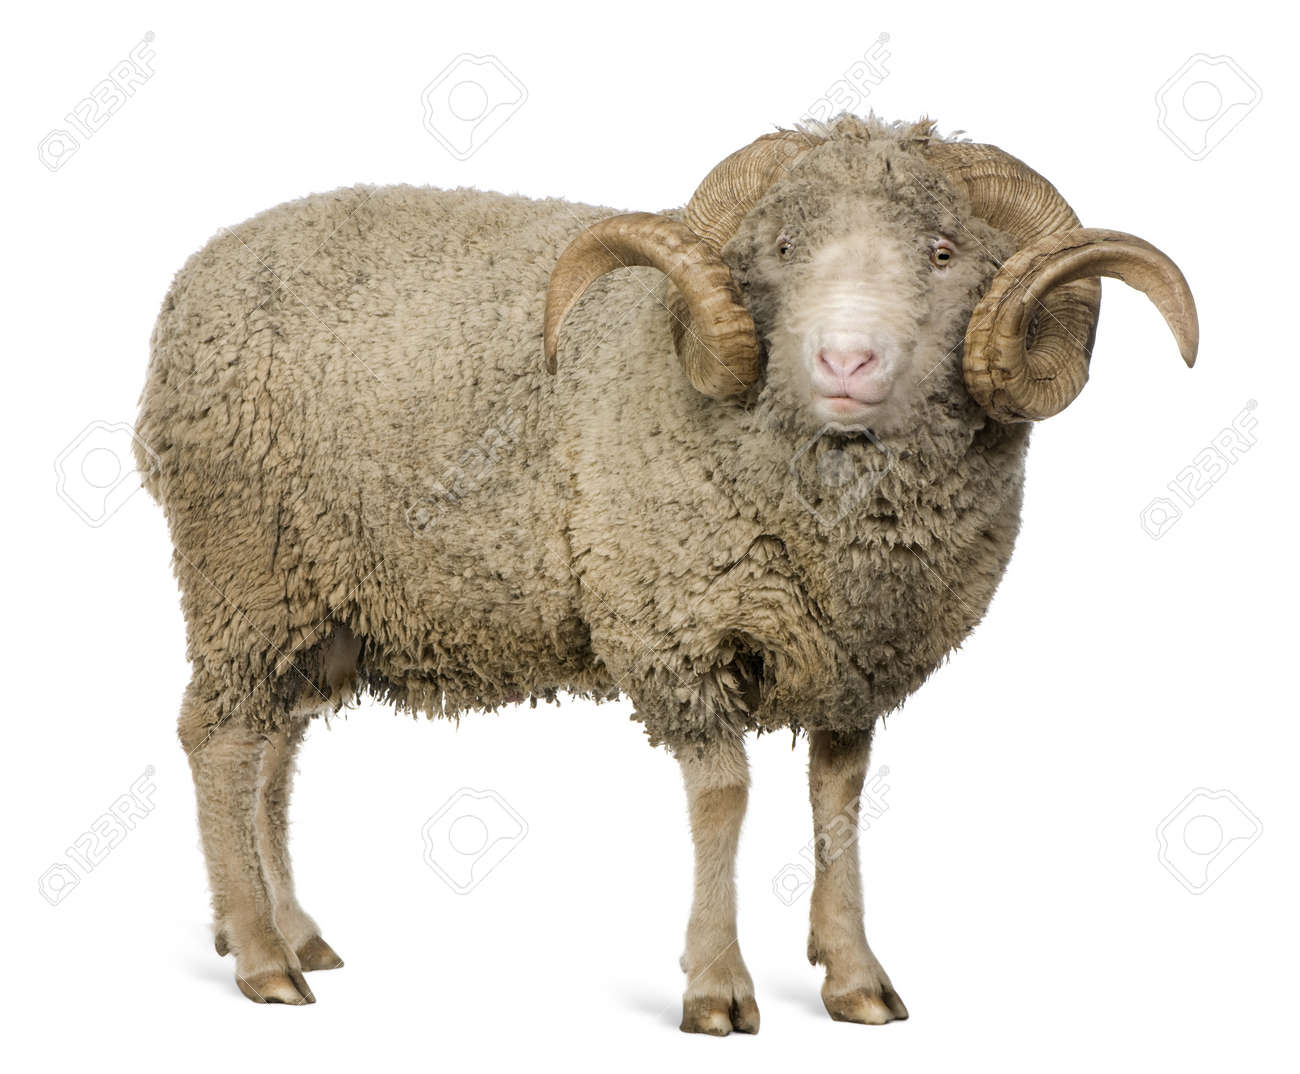 Arles Merino sheep, ram, 5 years old, standing in front of white background - 7121398